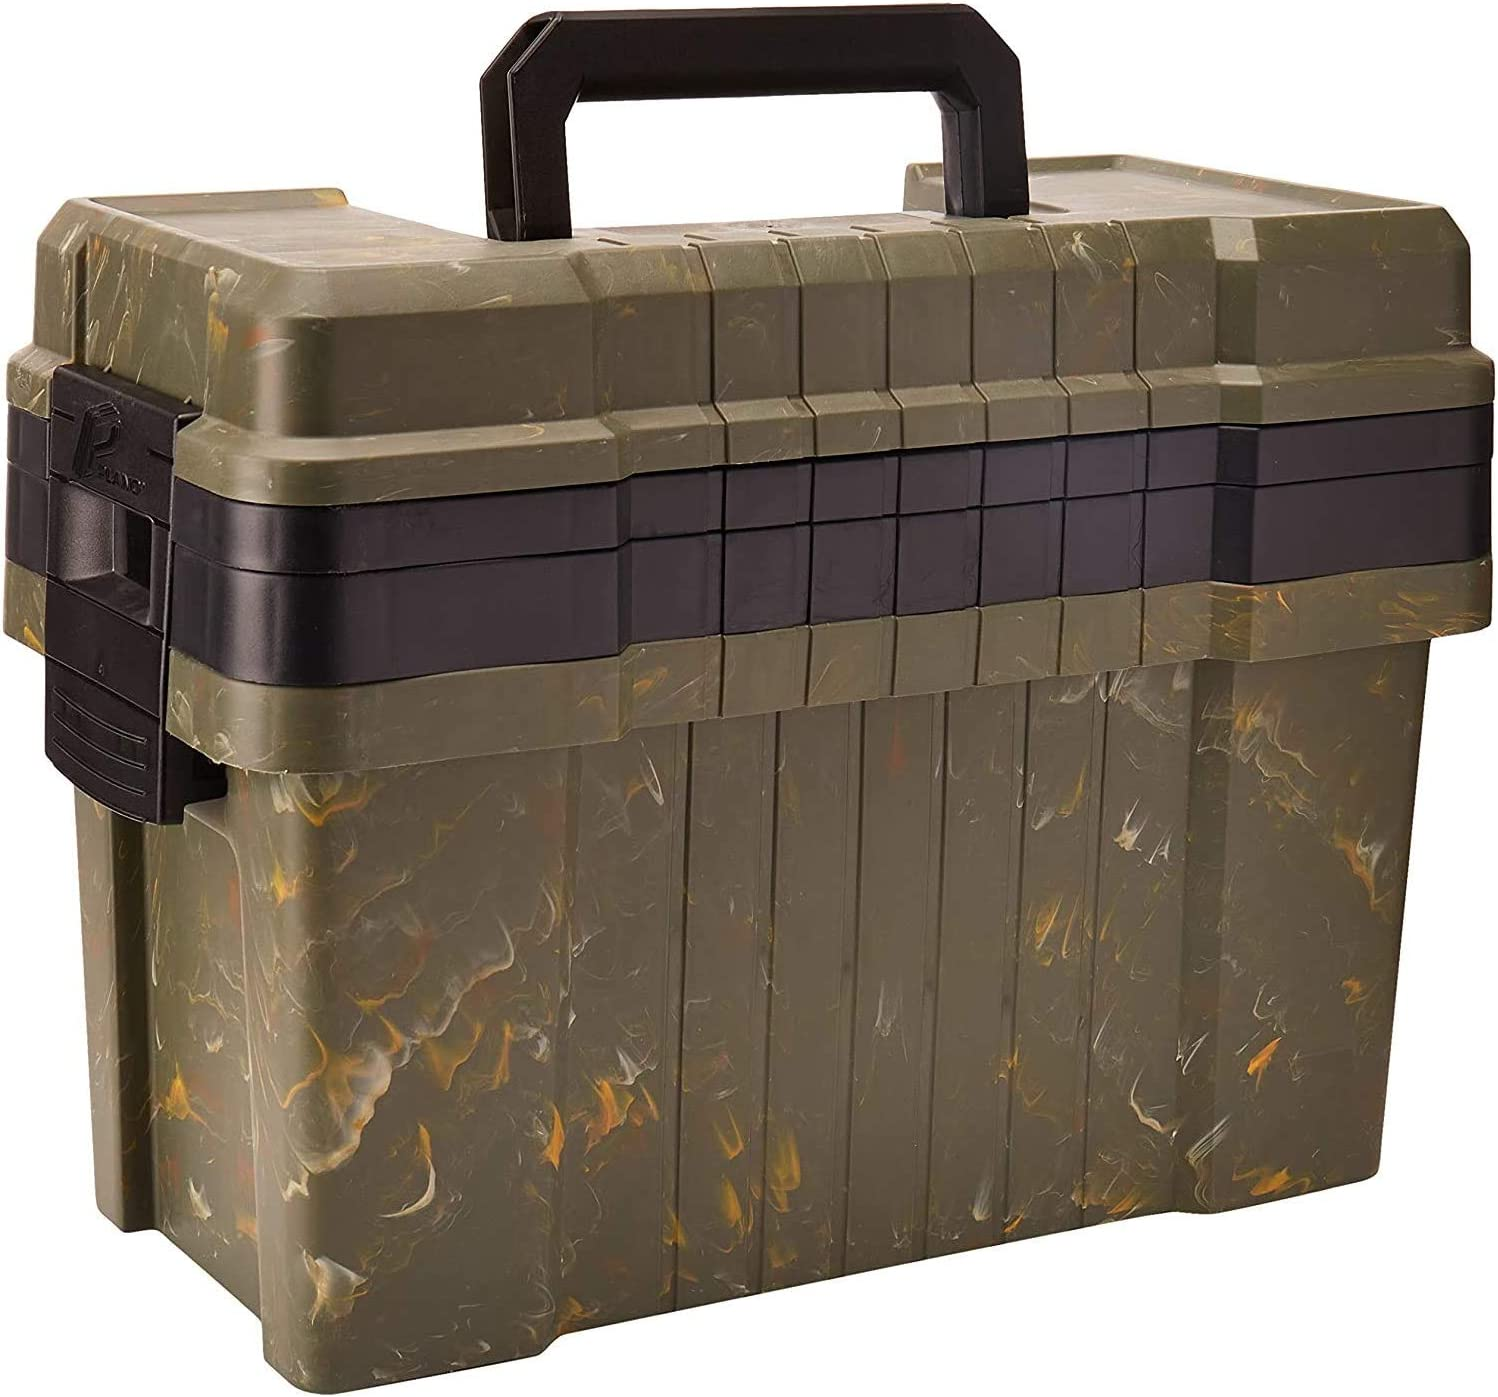 Plano 1612 Deep OFFicial shop Water Resistant Field with Tray Out Box Lift Super beauty product restock quality top!